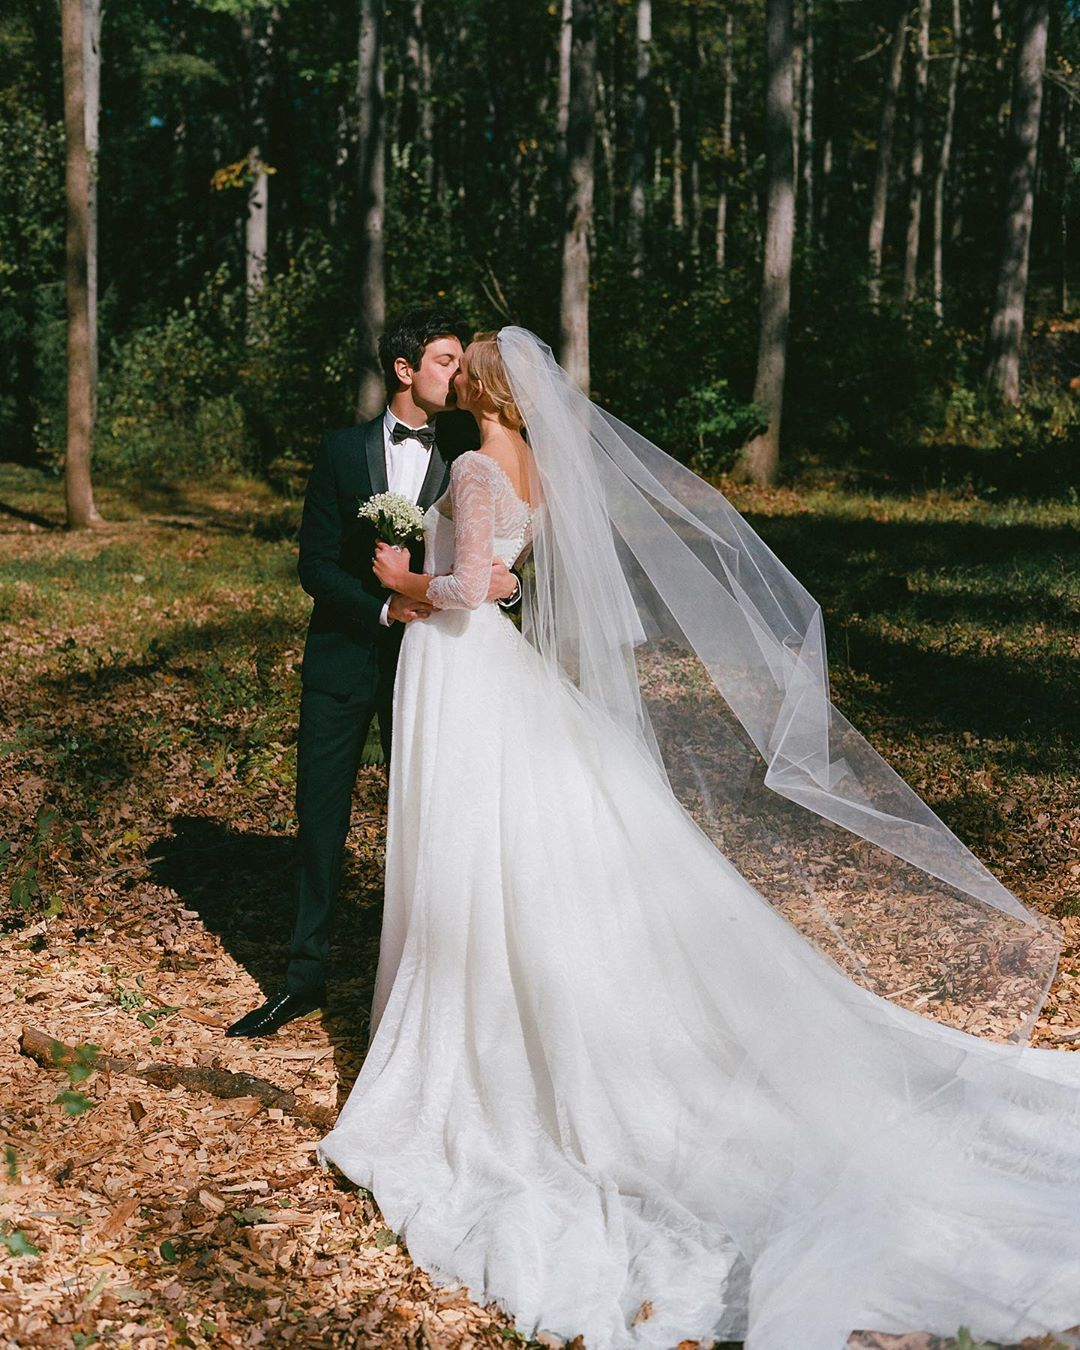 Photo of Thowback: The most beautiful celebrity wedding dresses of the decade